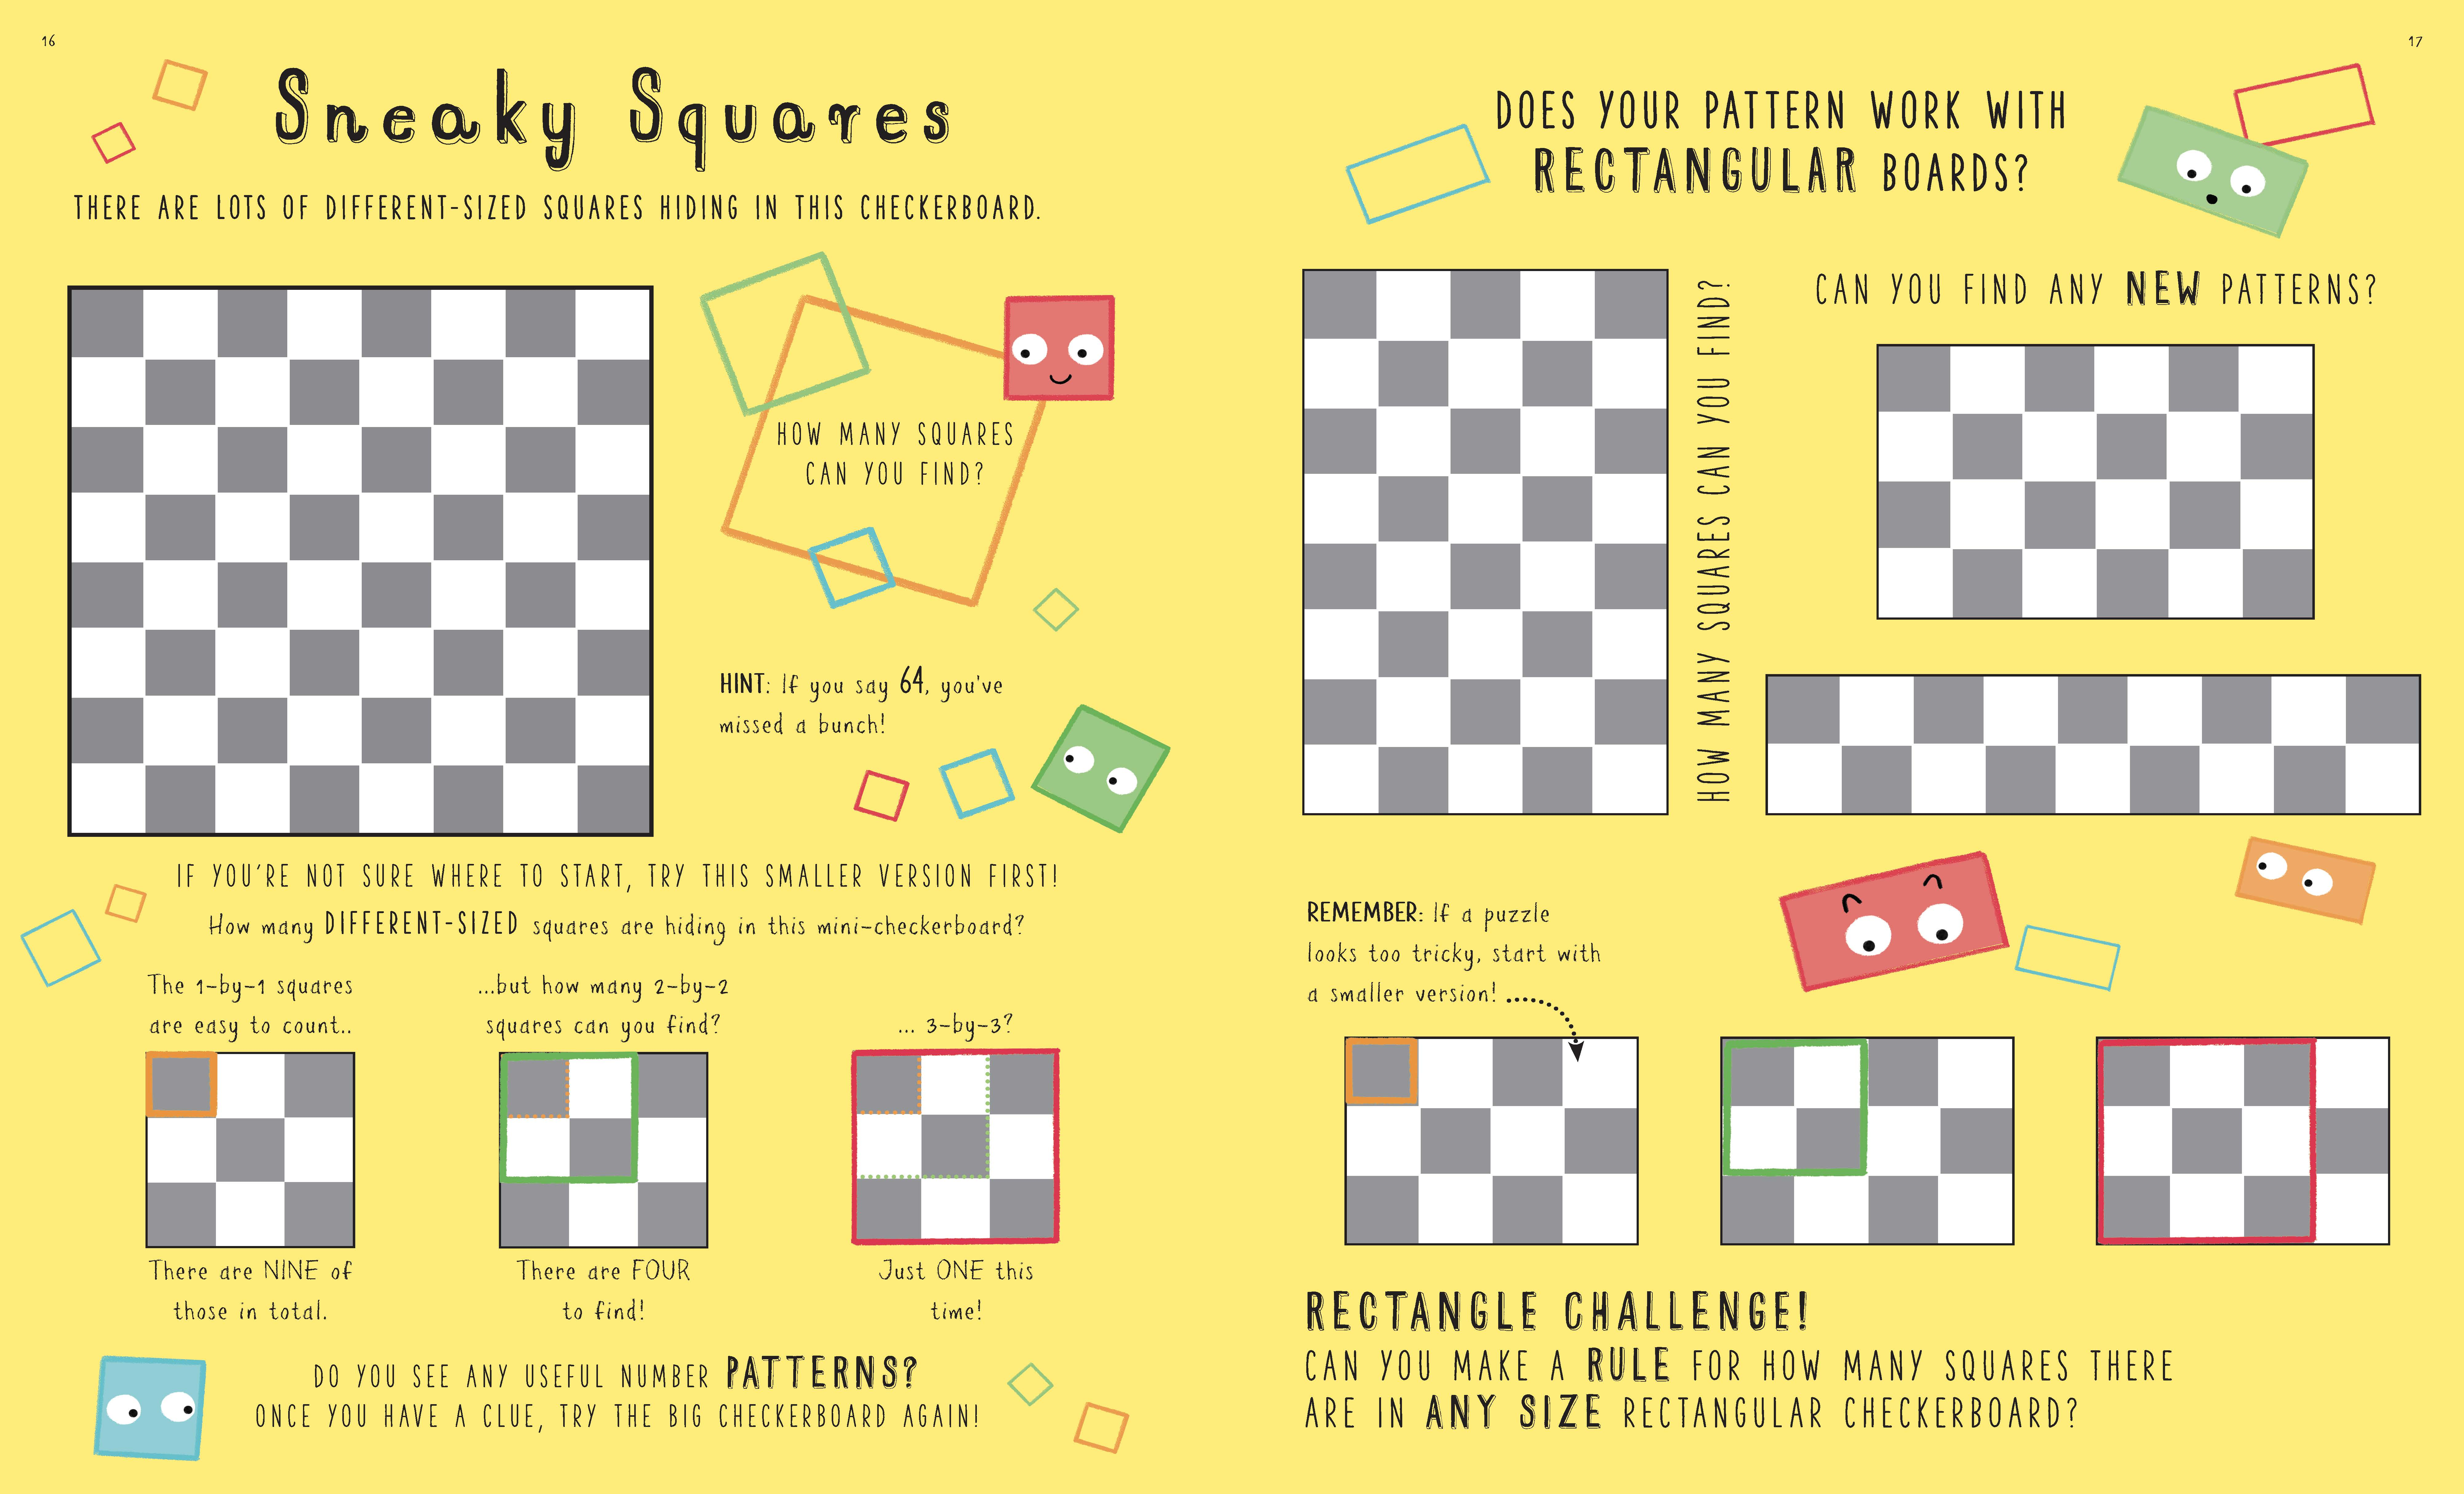 Sneaky squares